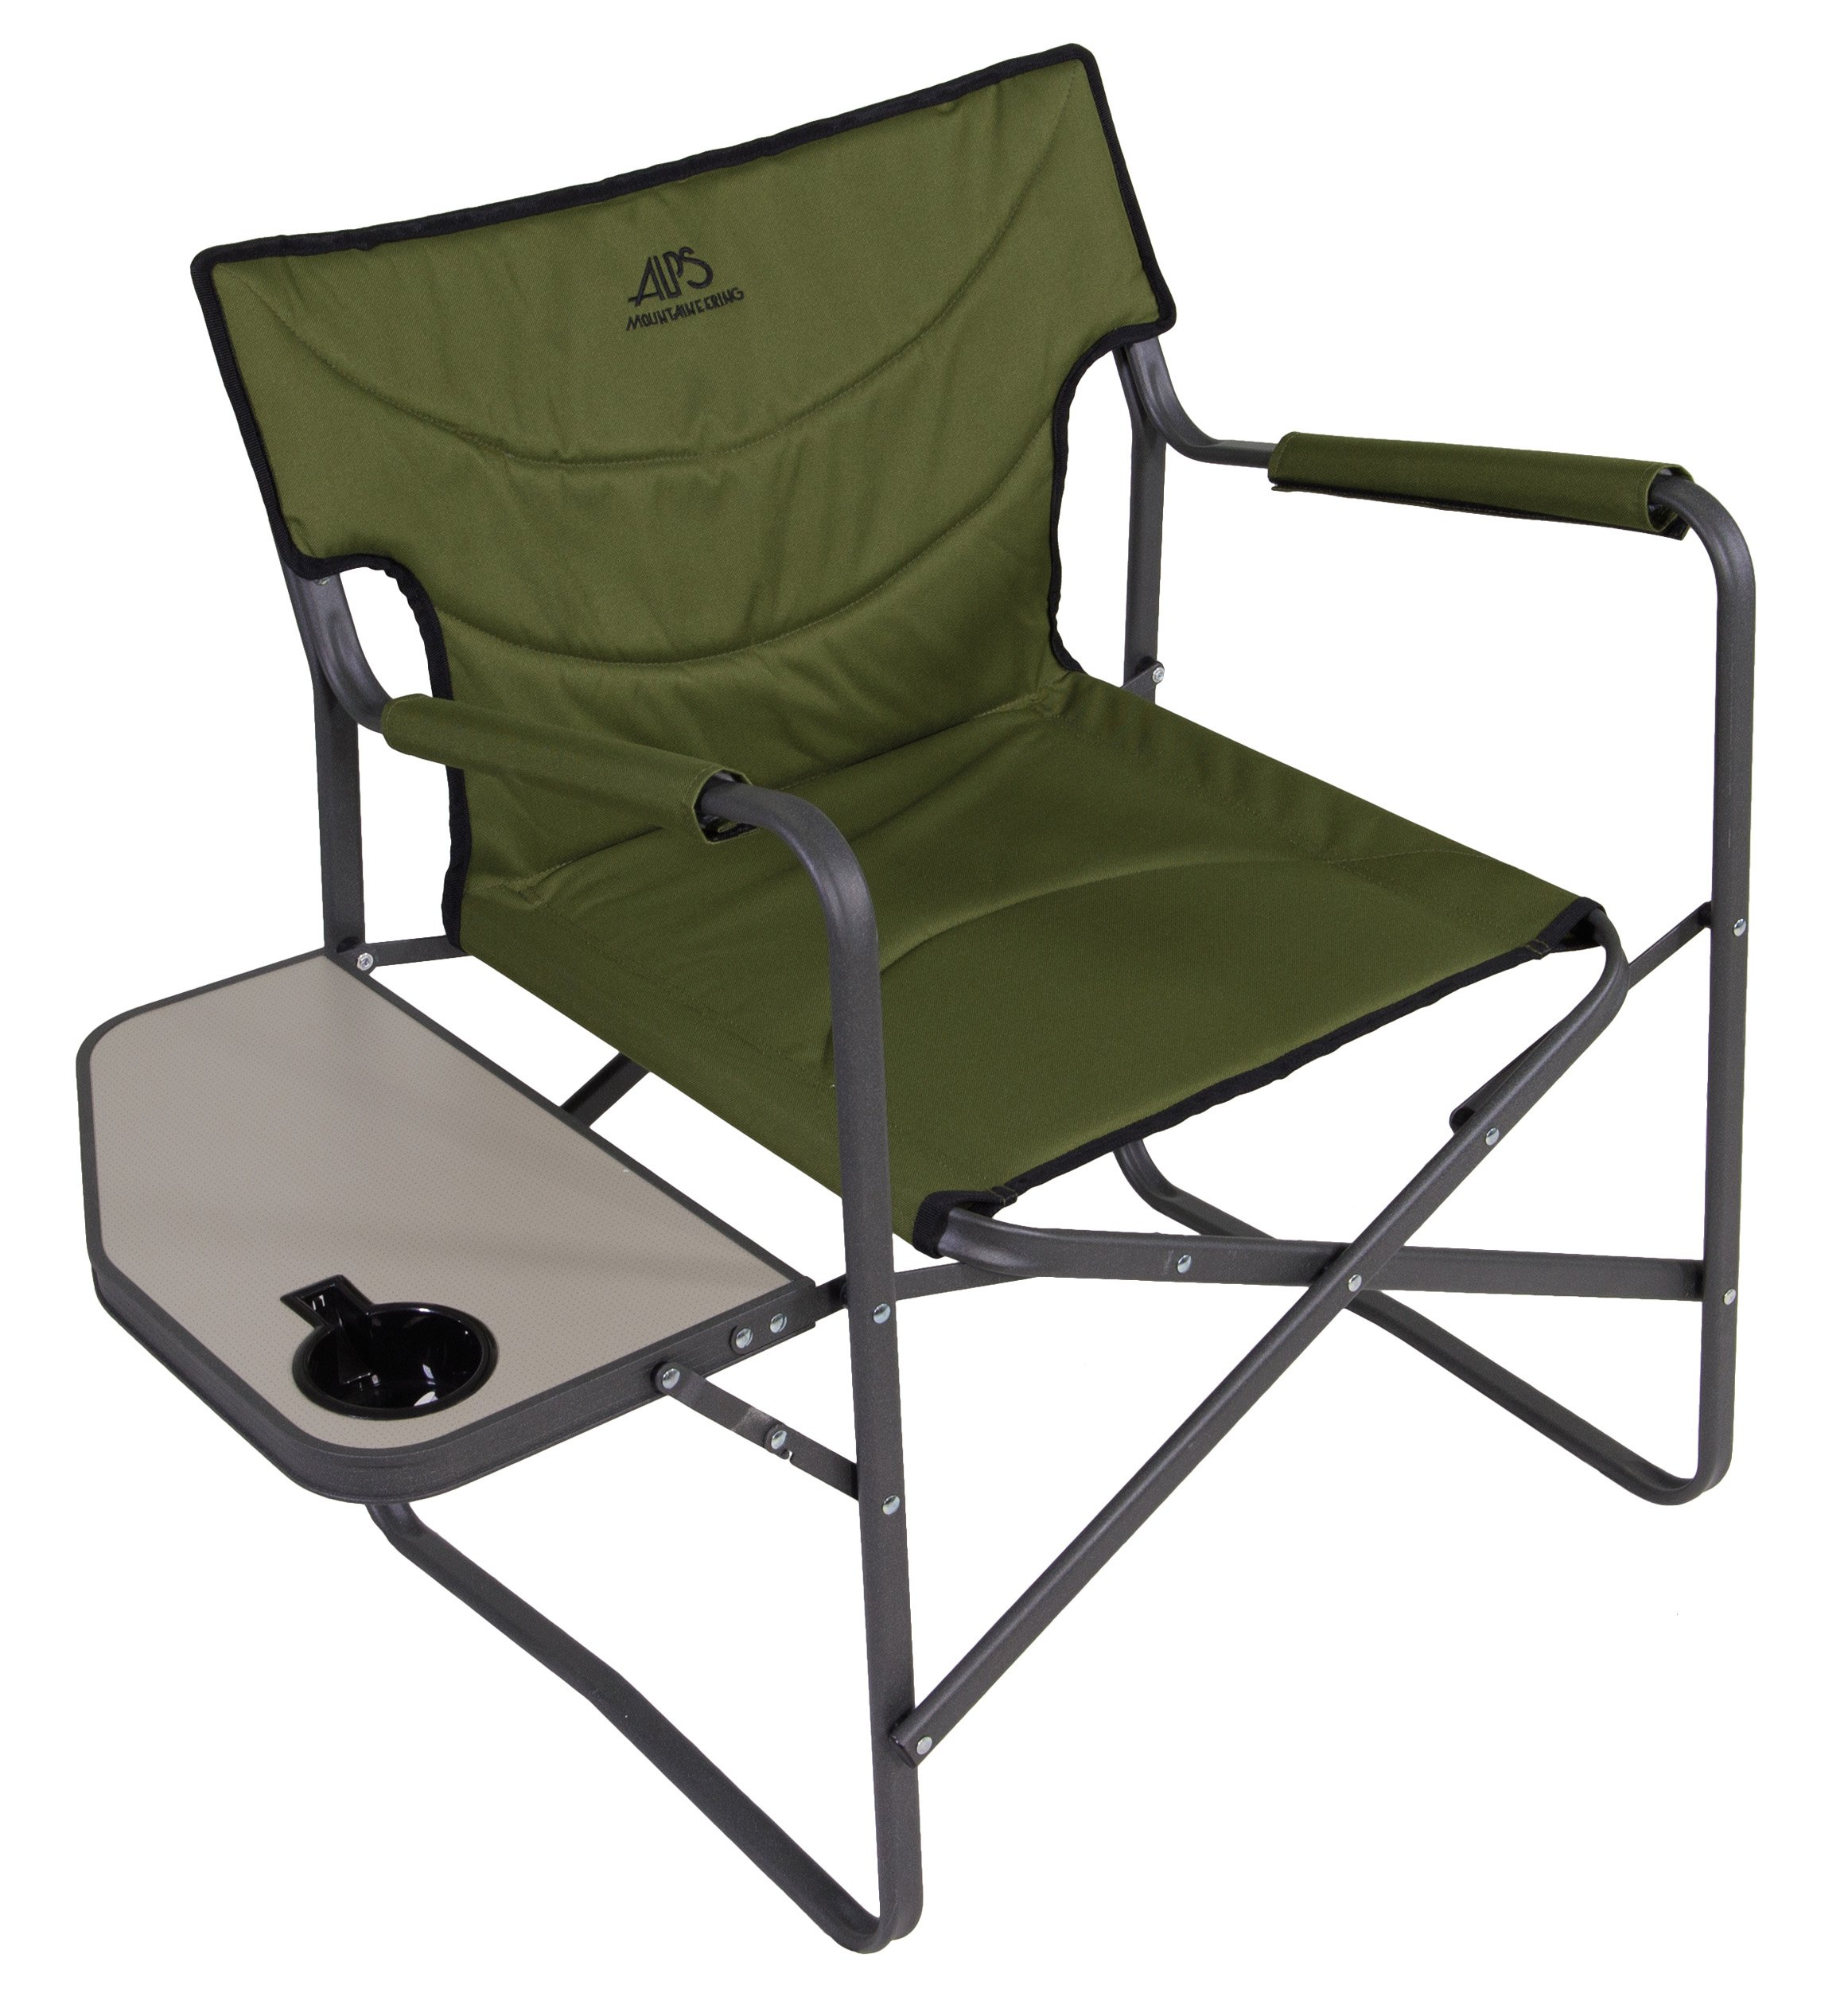 ALPS Mountaineering Creekside Chair